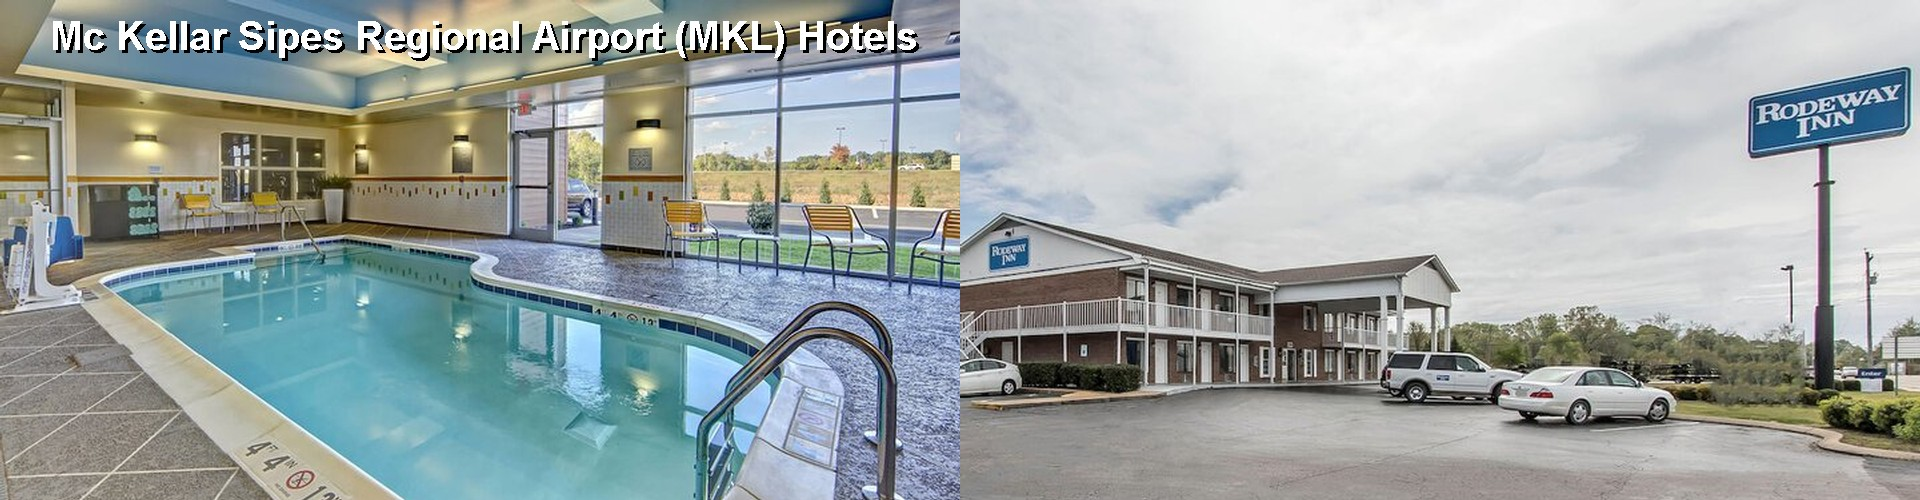 5 Best Hotels near Mc Kellar Sipes Regional Airport (MKL)